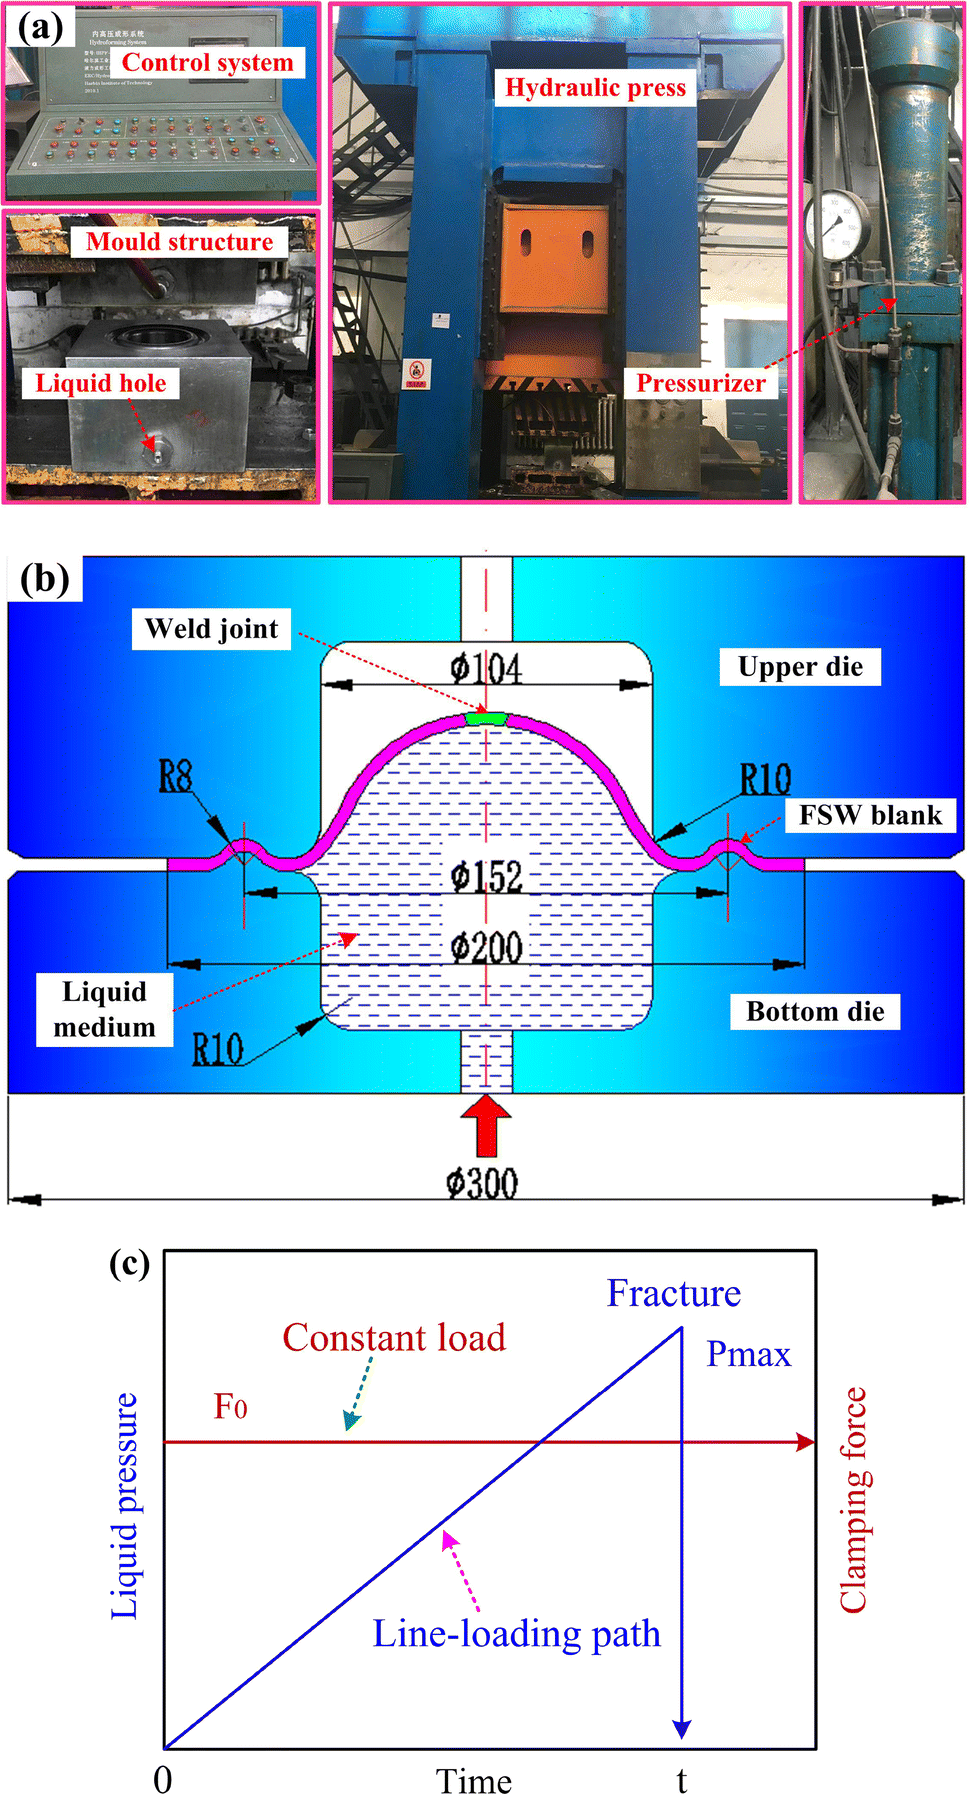 Enhancing Formability Of Aa2219 Aluminum Alloy Friction Stir Welded This Is The Hydraulic Circuit Diagram For A Typical Open Center Hydro Image In New Window